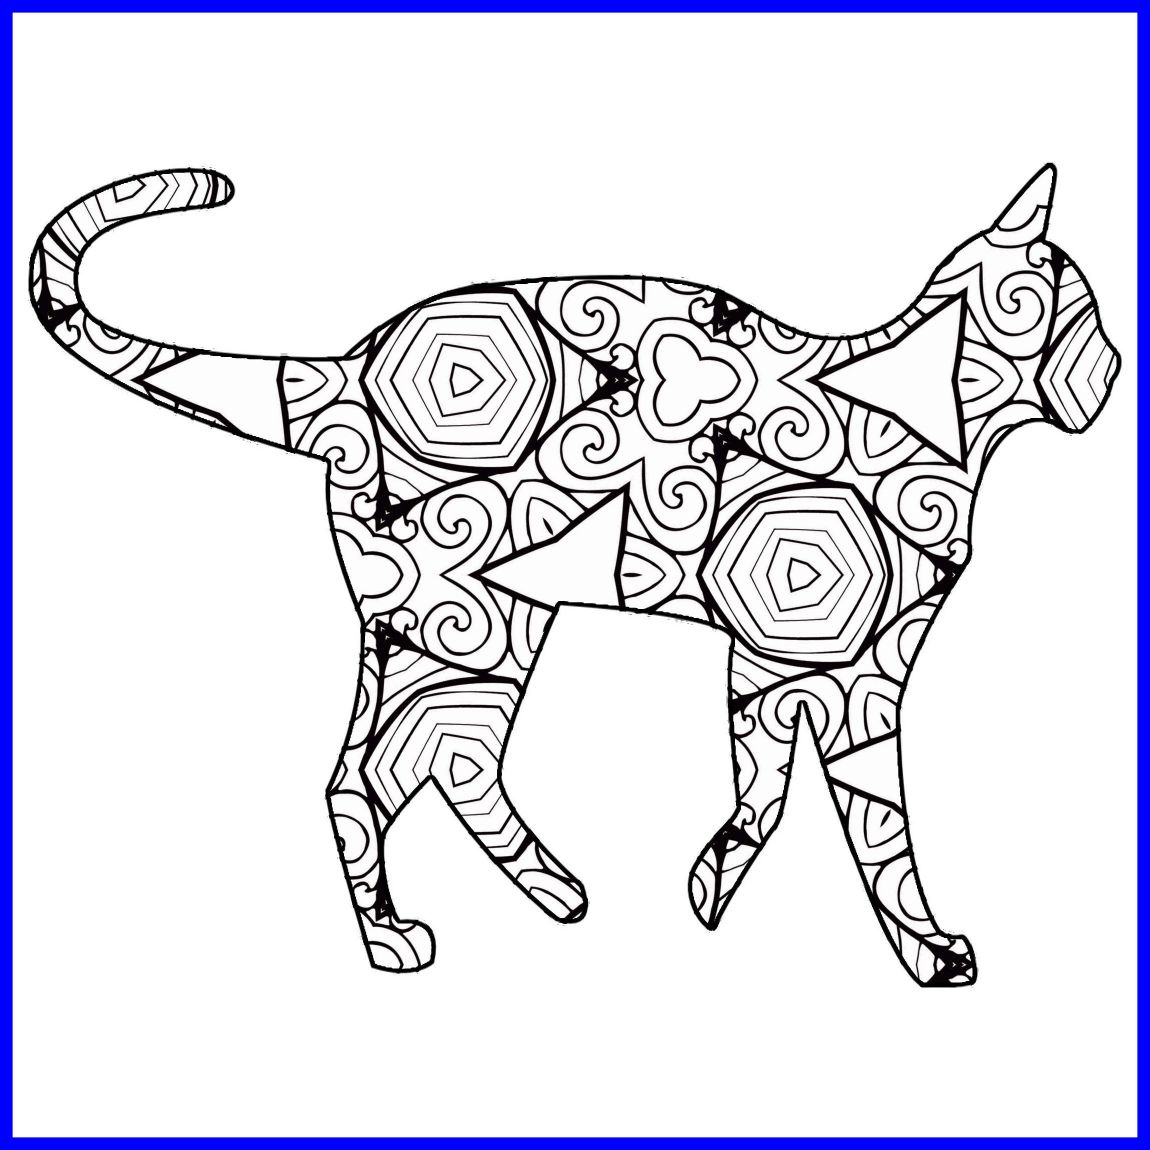 1150x1150 Shocking Geometric Cat Coloring Page Image Of Popular And Trends